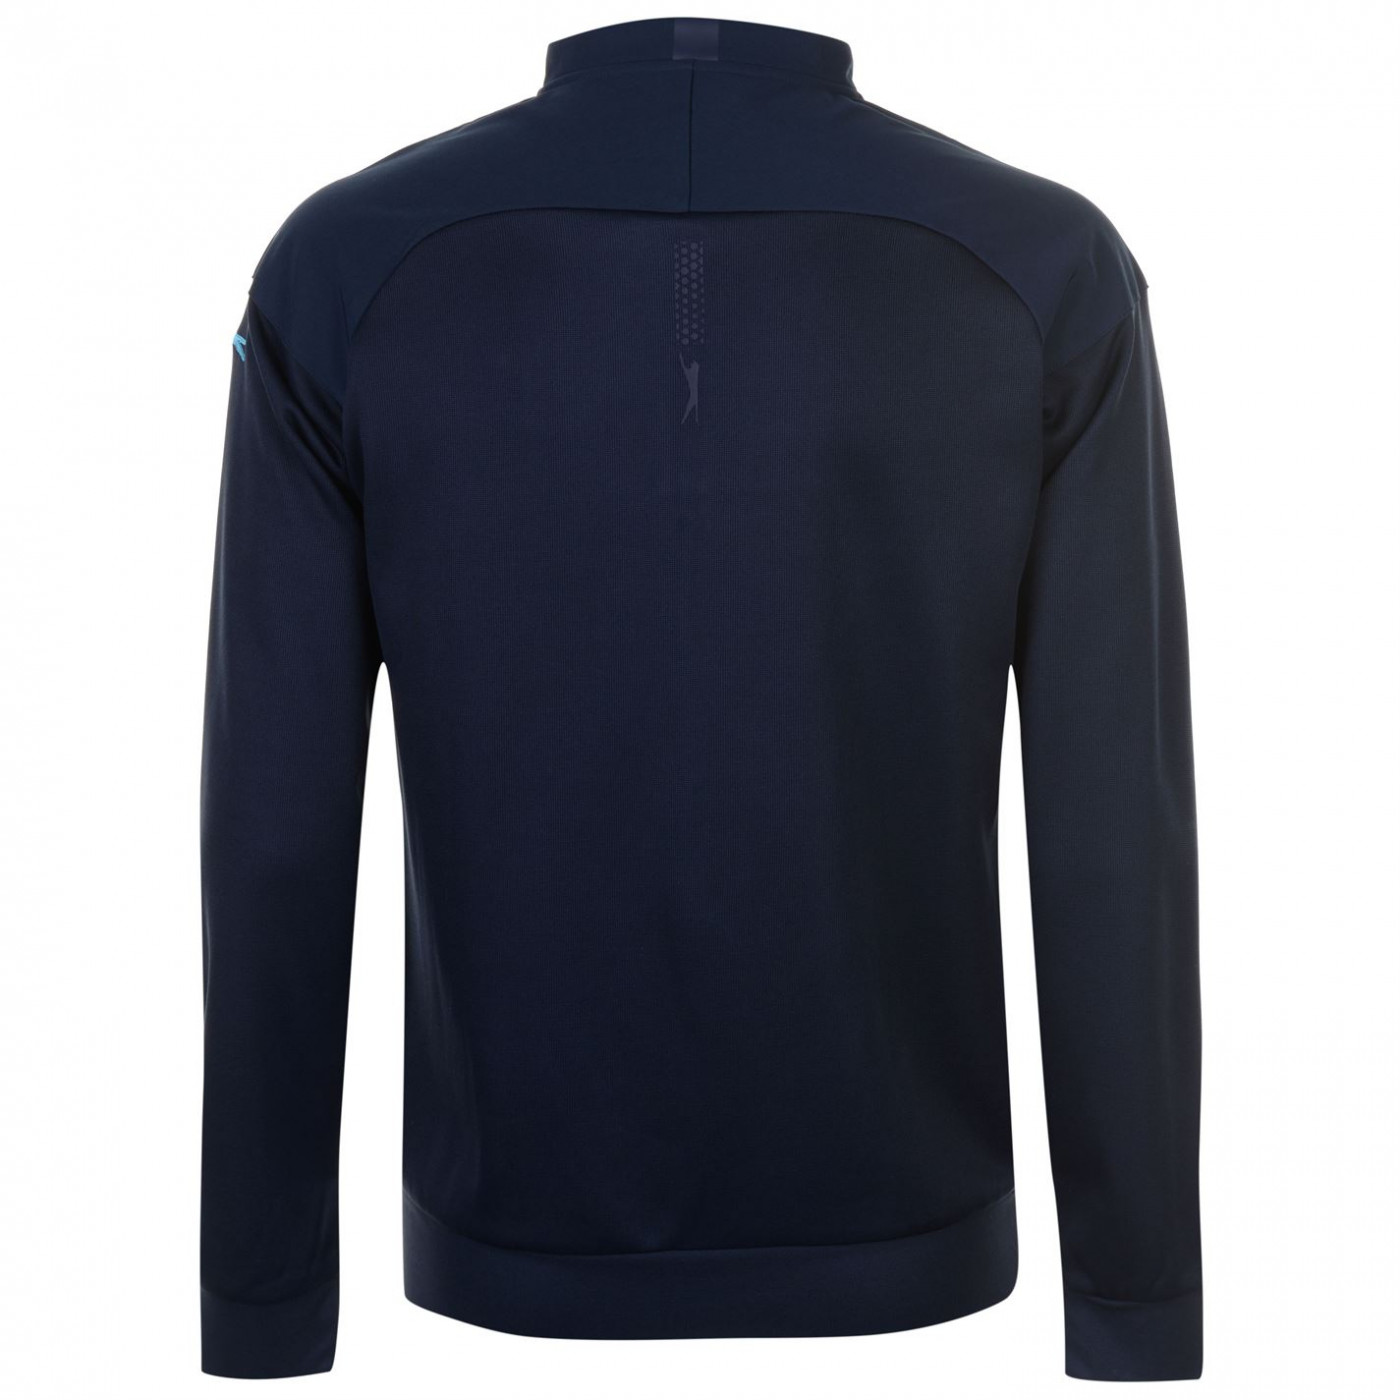 Slazenger Softshell Jacket Mens